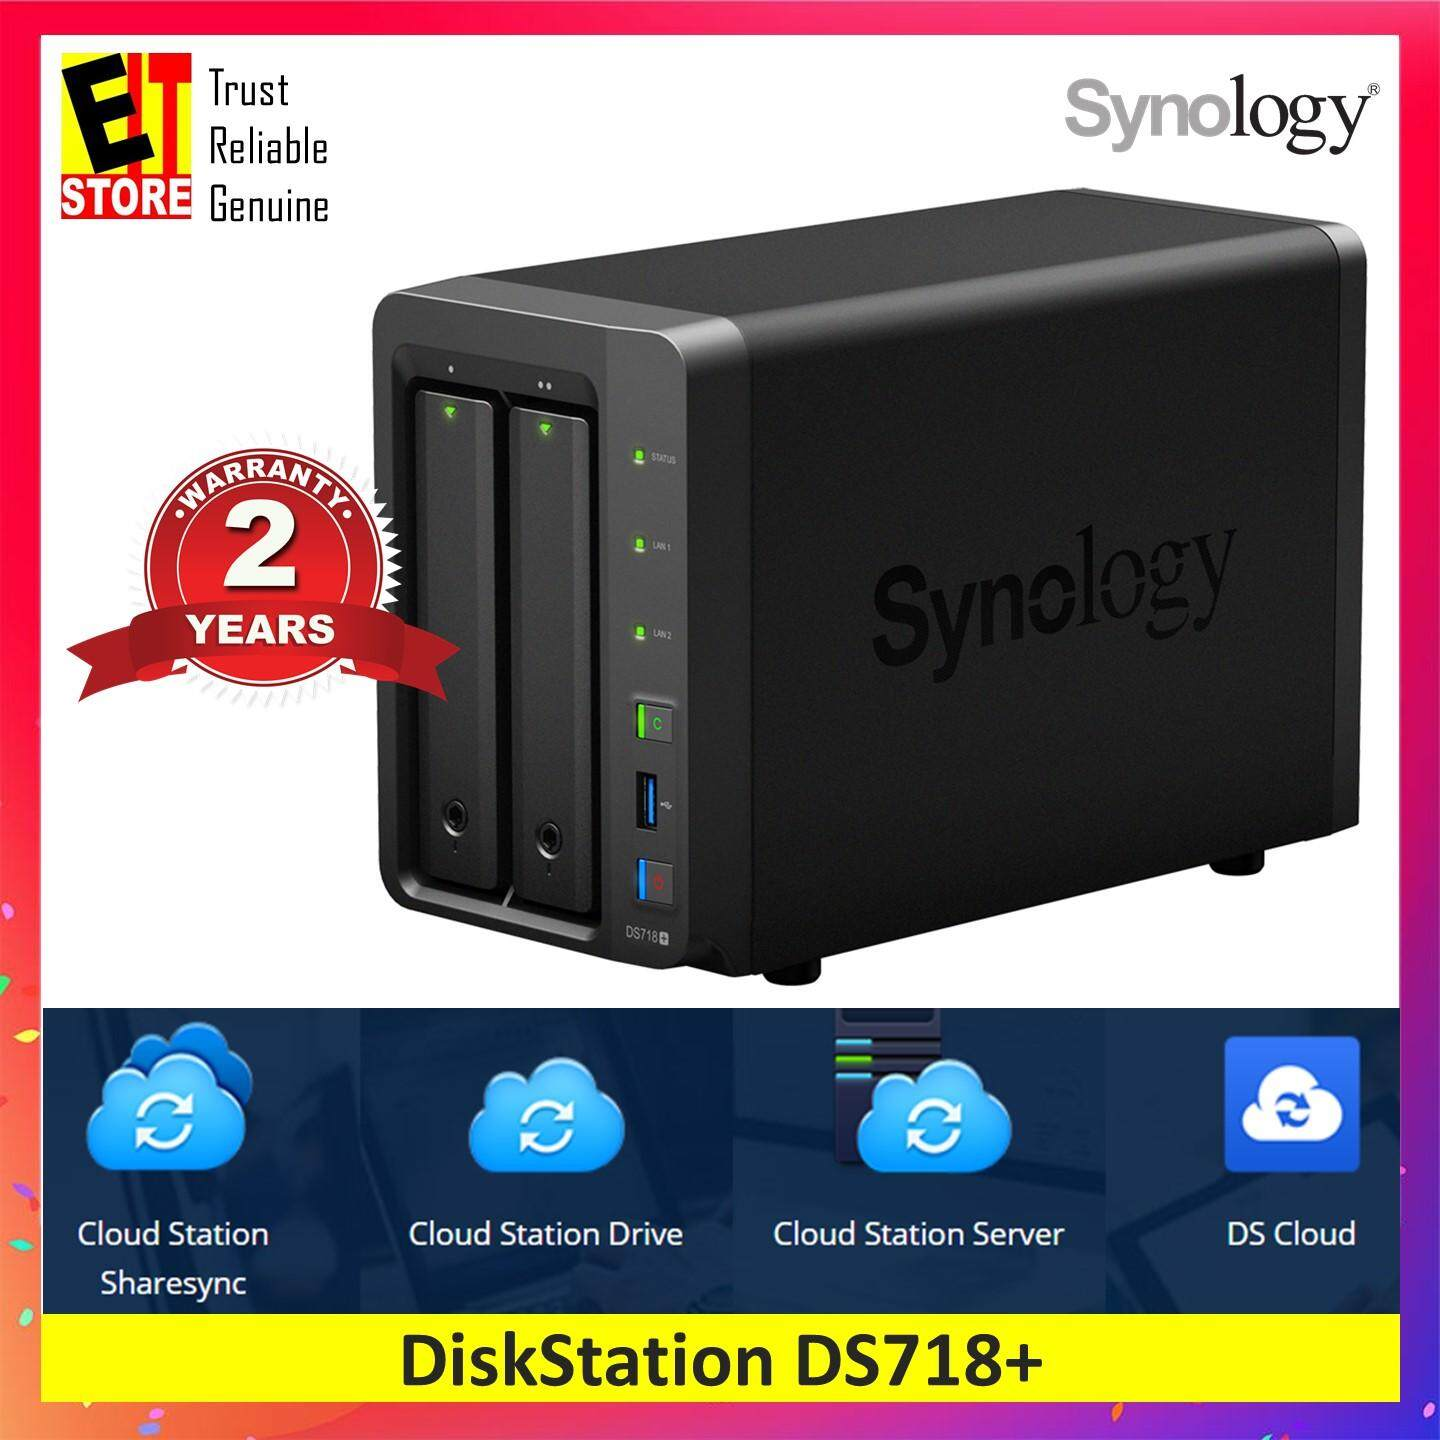 Synology Diskstation Ds718+ 2gb Ddr3l High Performance Nas Optimized For Intensive Workloads By Eit Store.